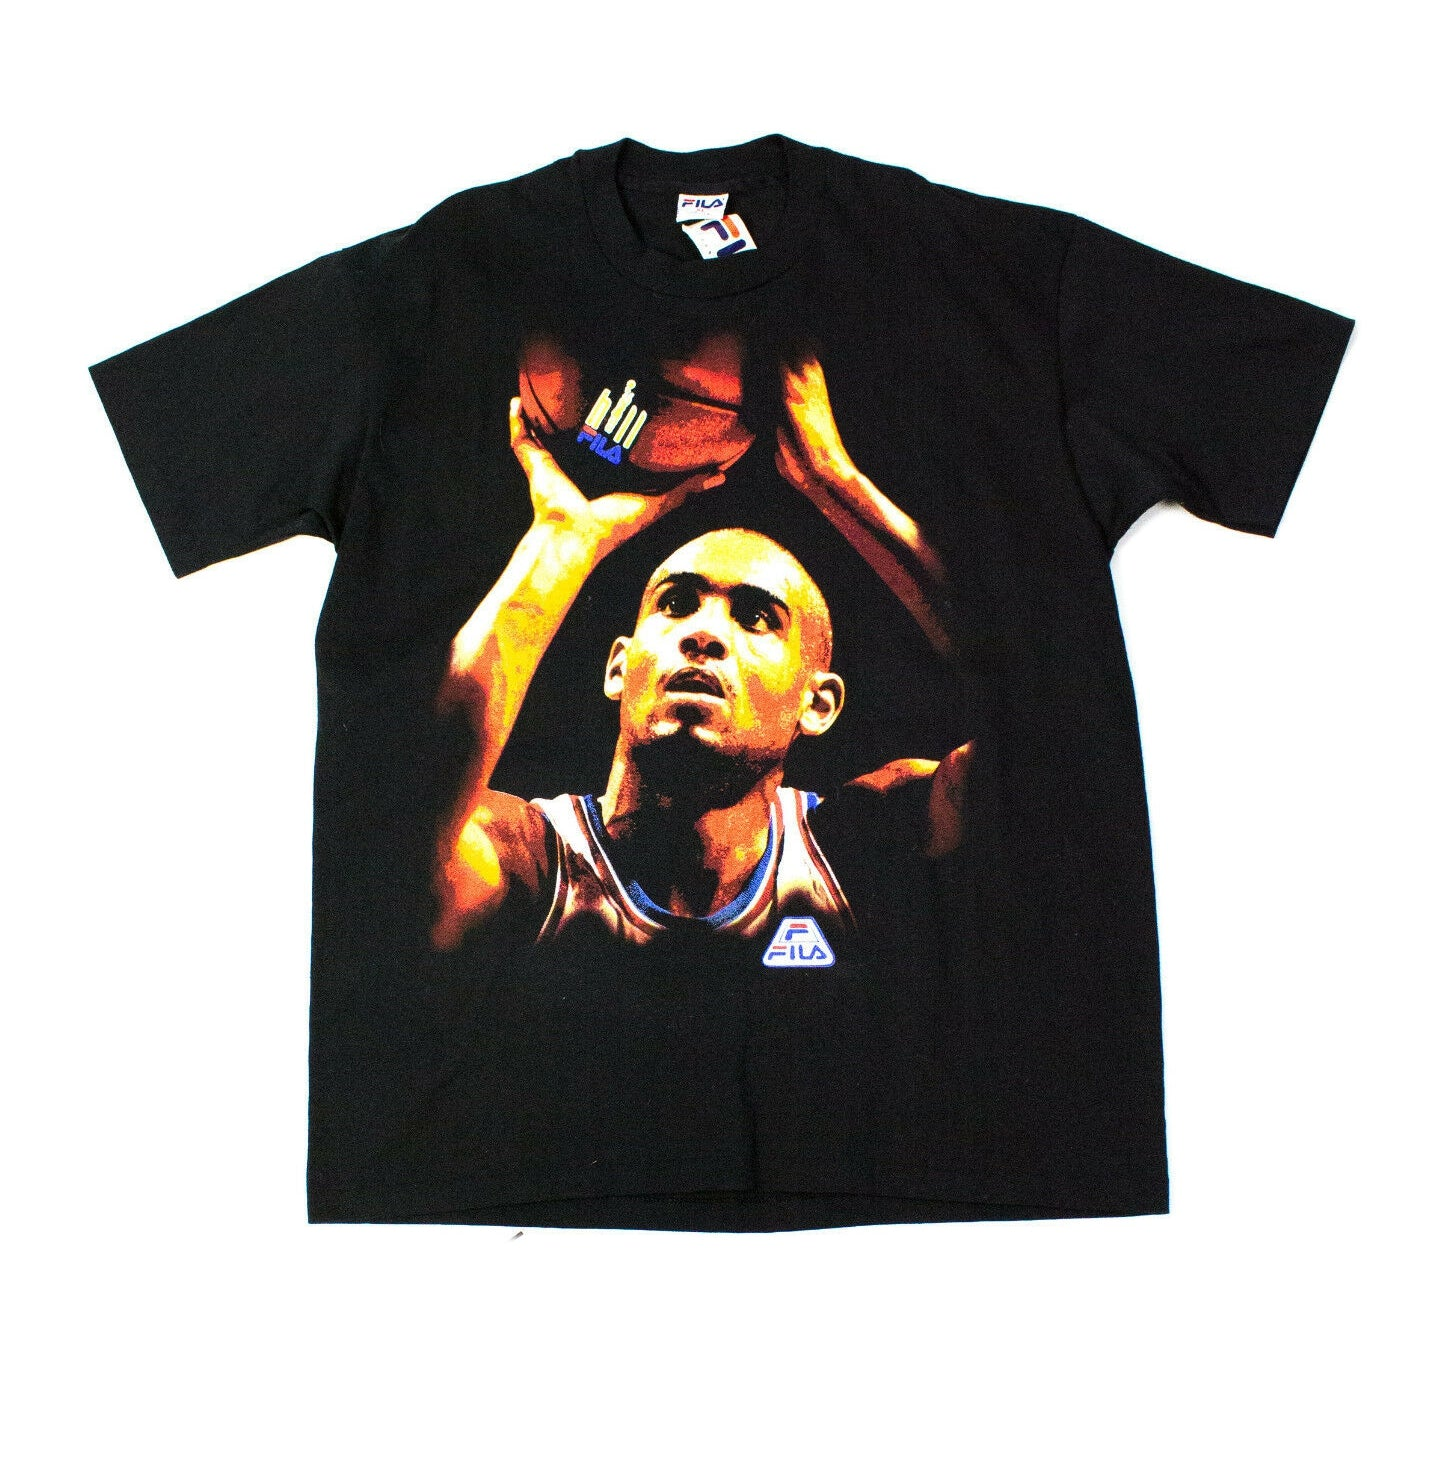 FILA NBA Grant Hill Vintage Black Cotton T-shirt, XL